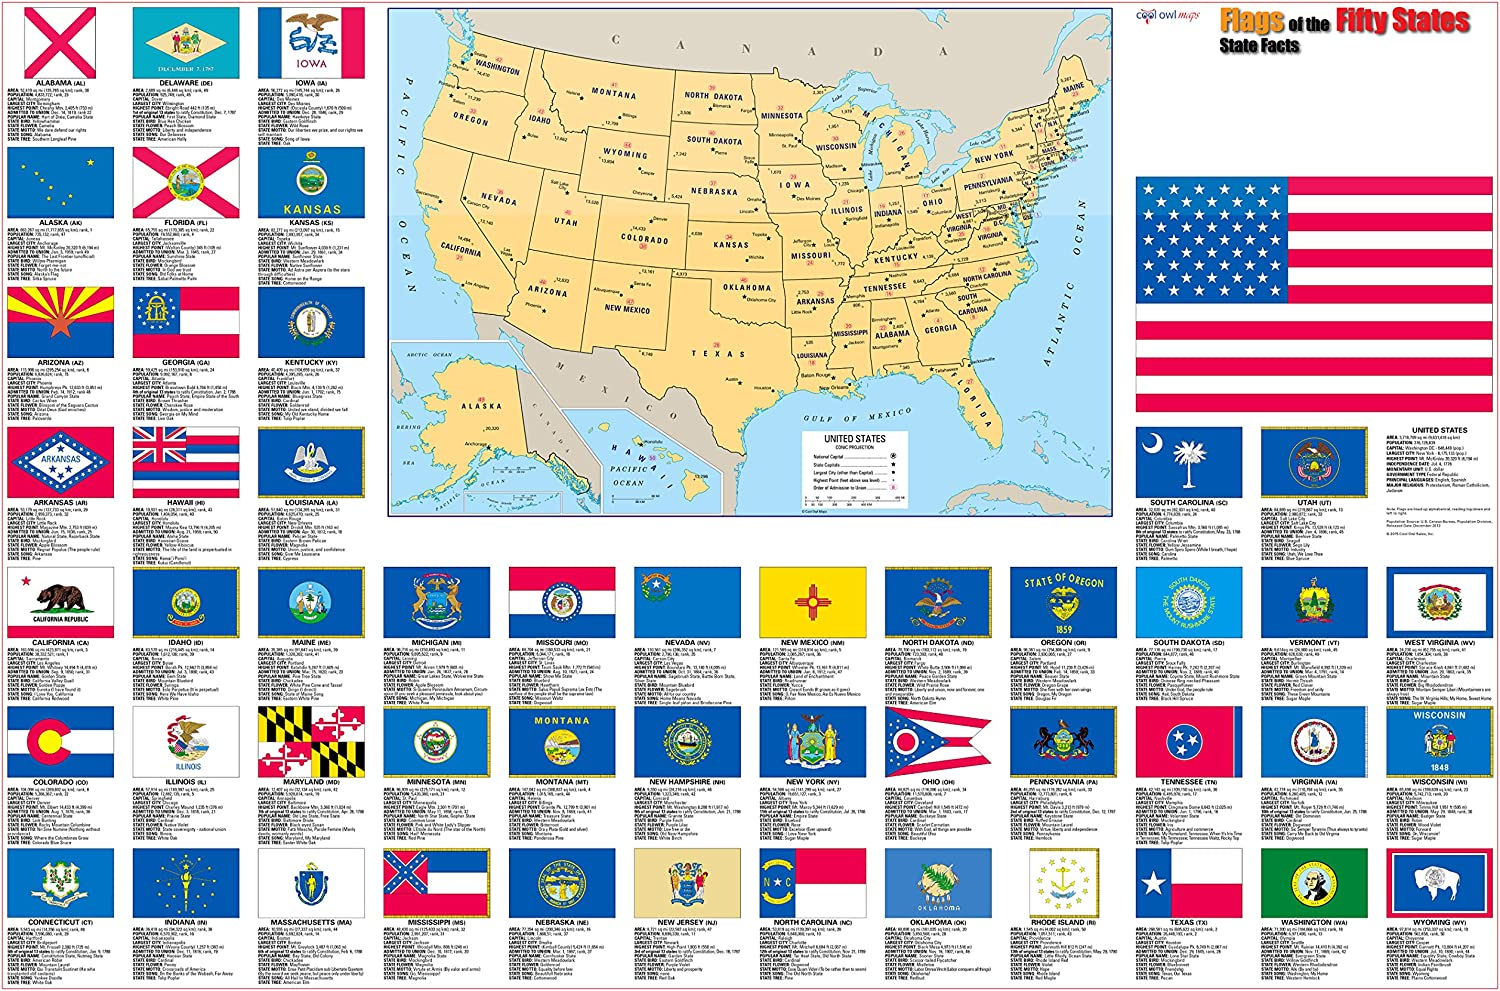 Us State Flags Map Amazon.: United States Flags Map Wall Poster   36x24 Rolled